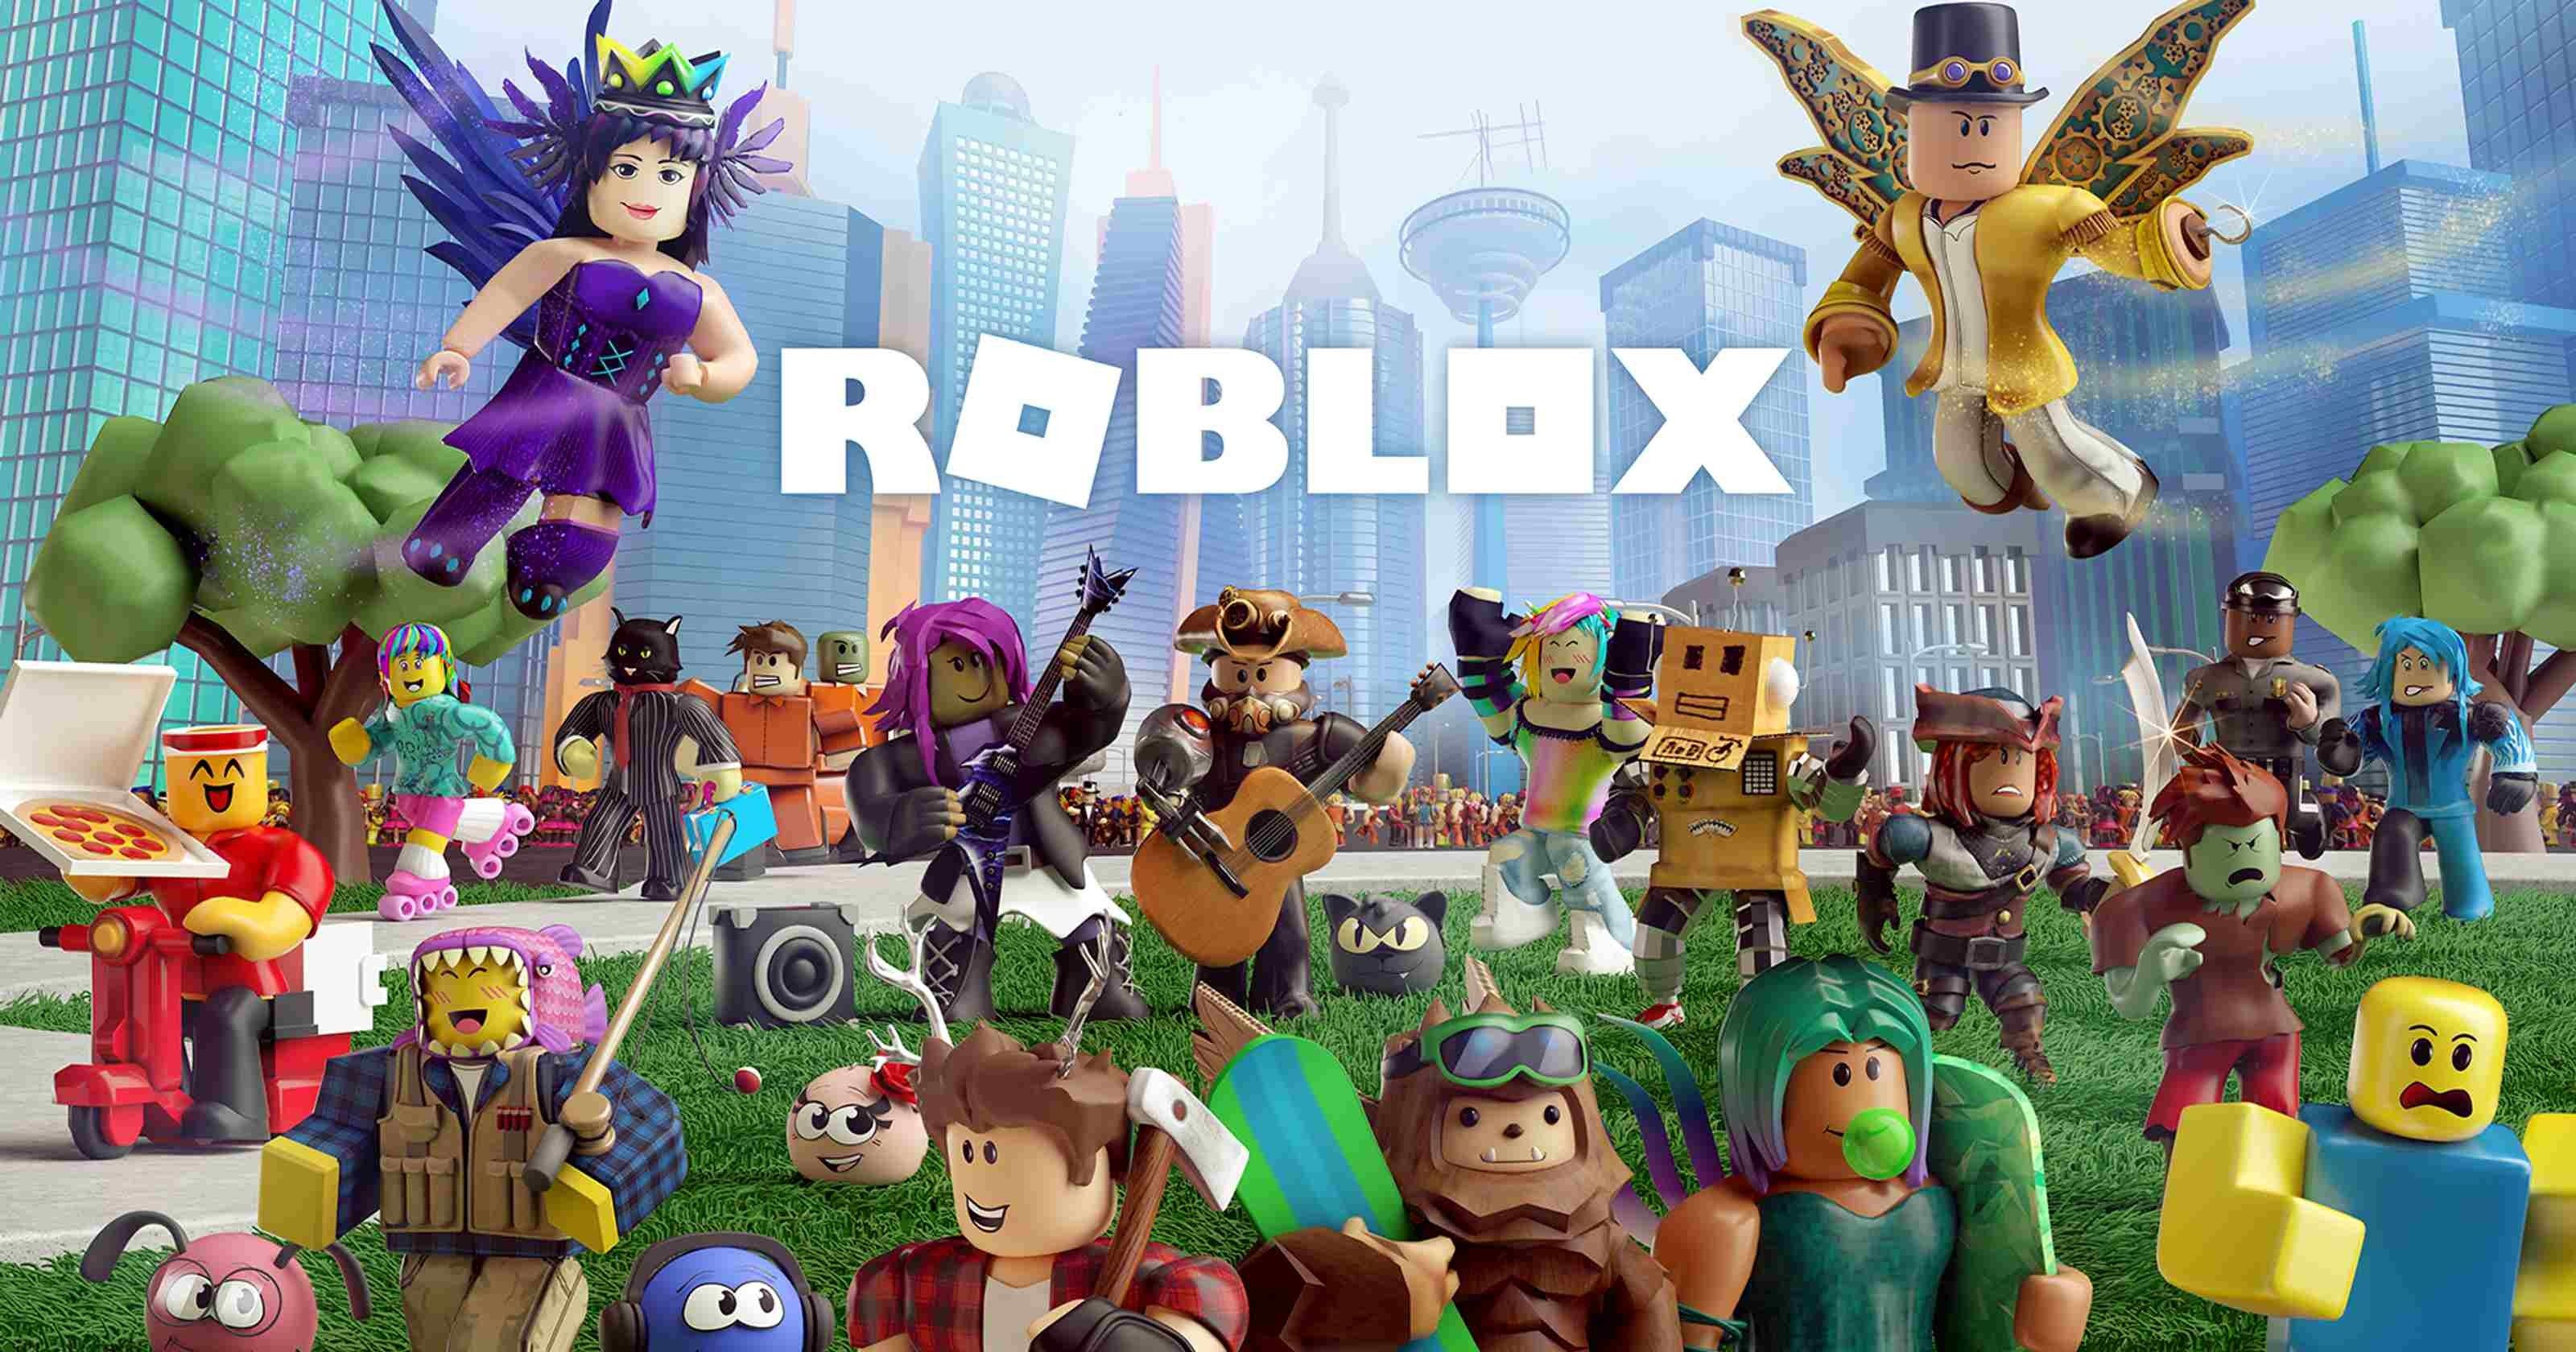 Roblox Girl Wallpapers Top Free Roblox Girl Backgrounds